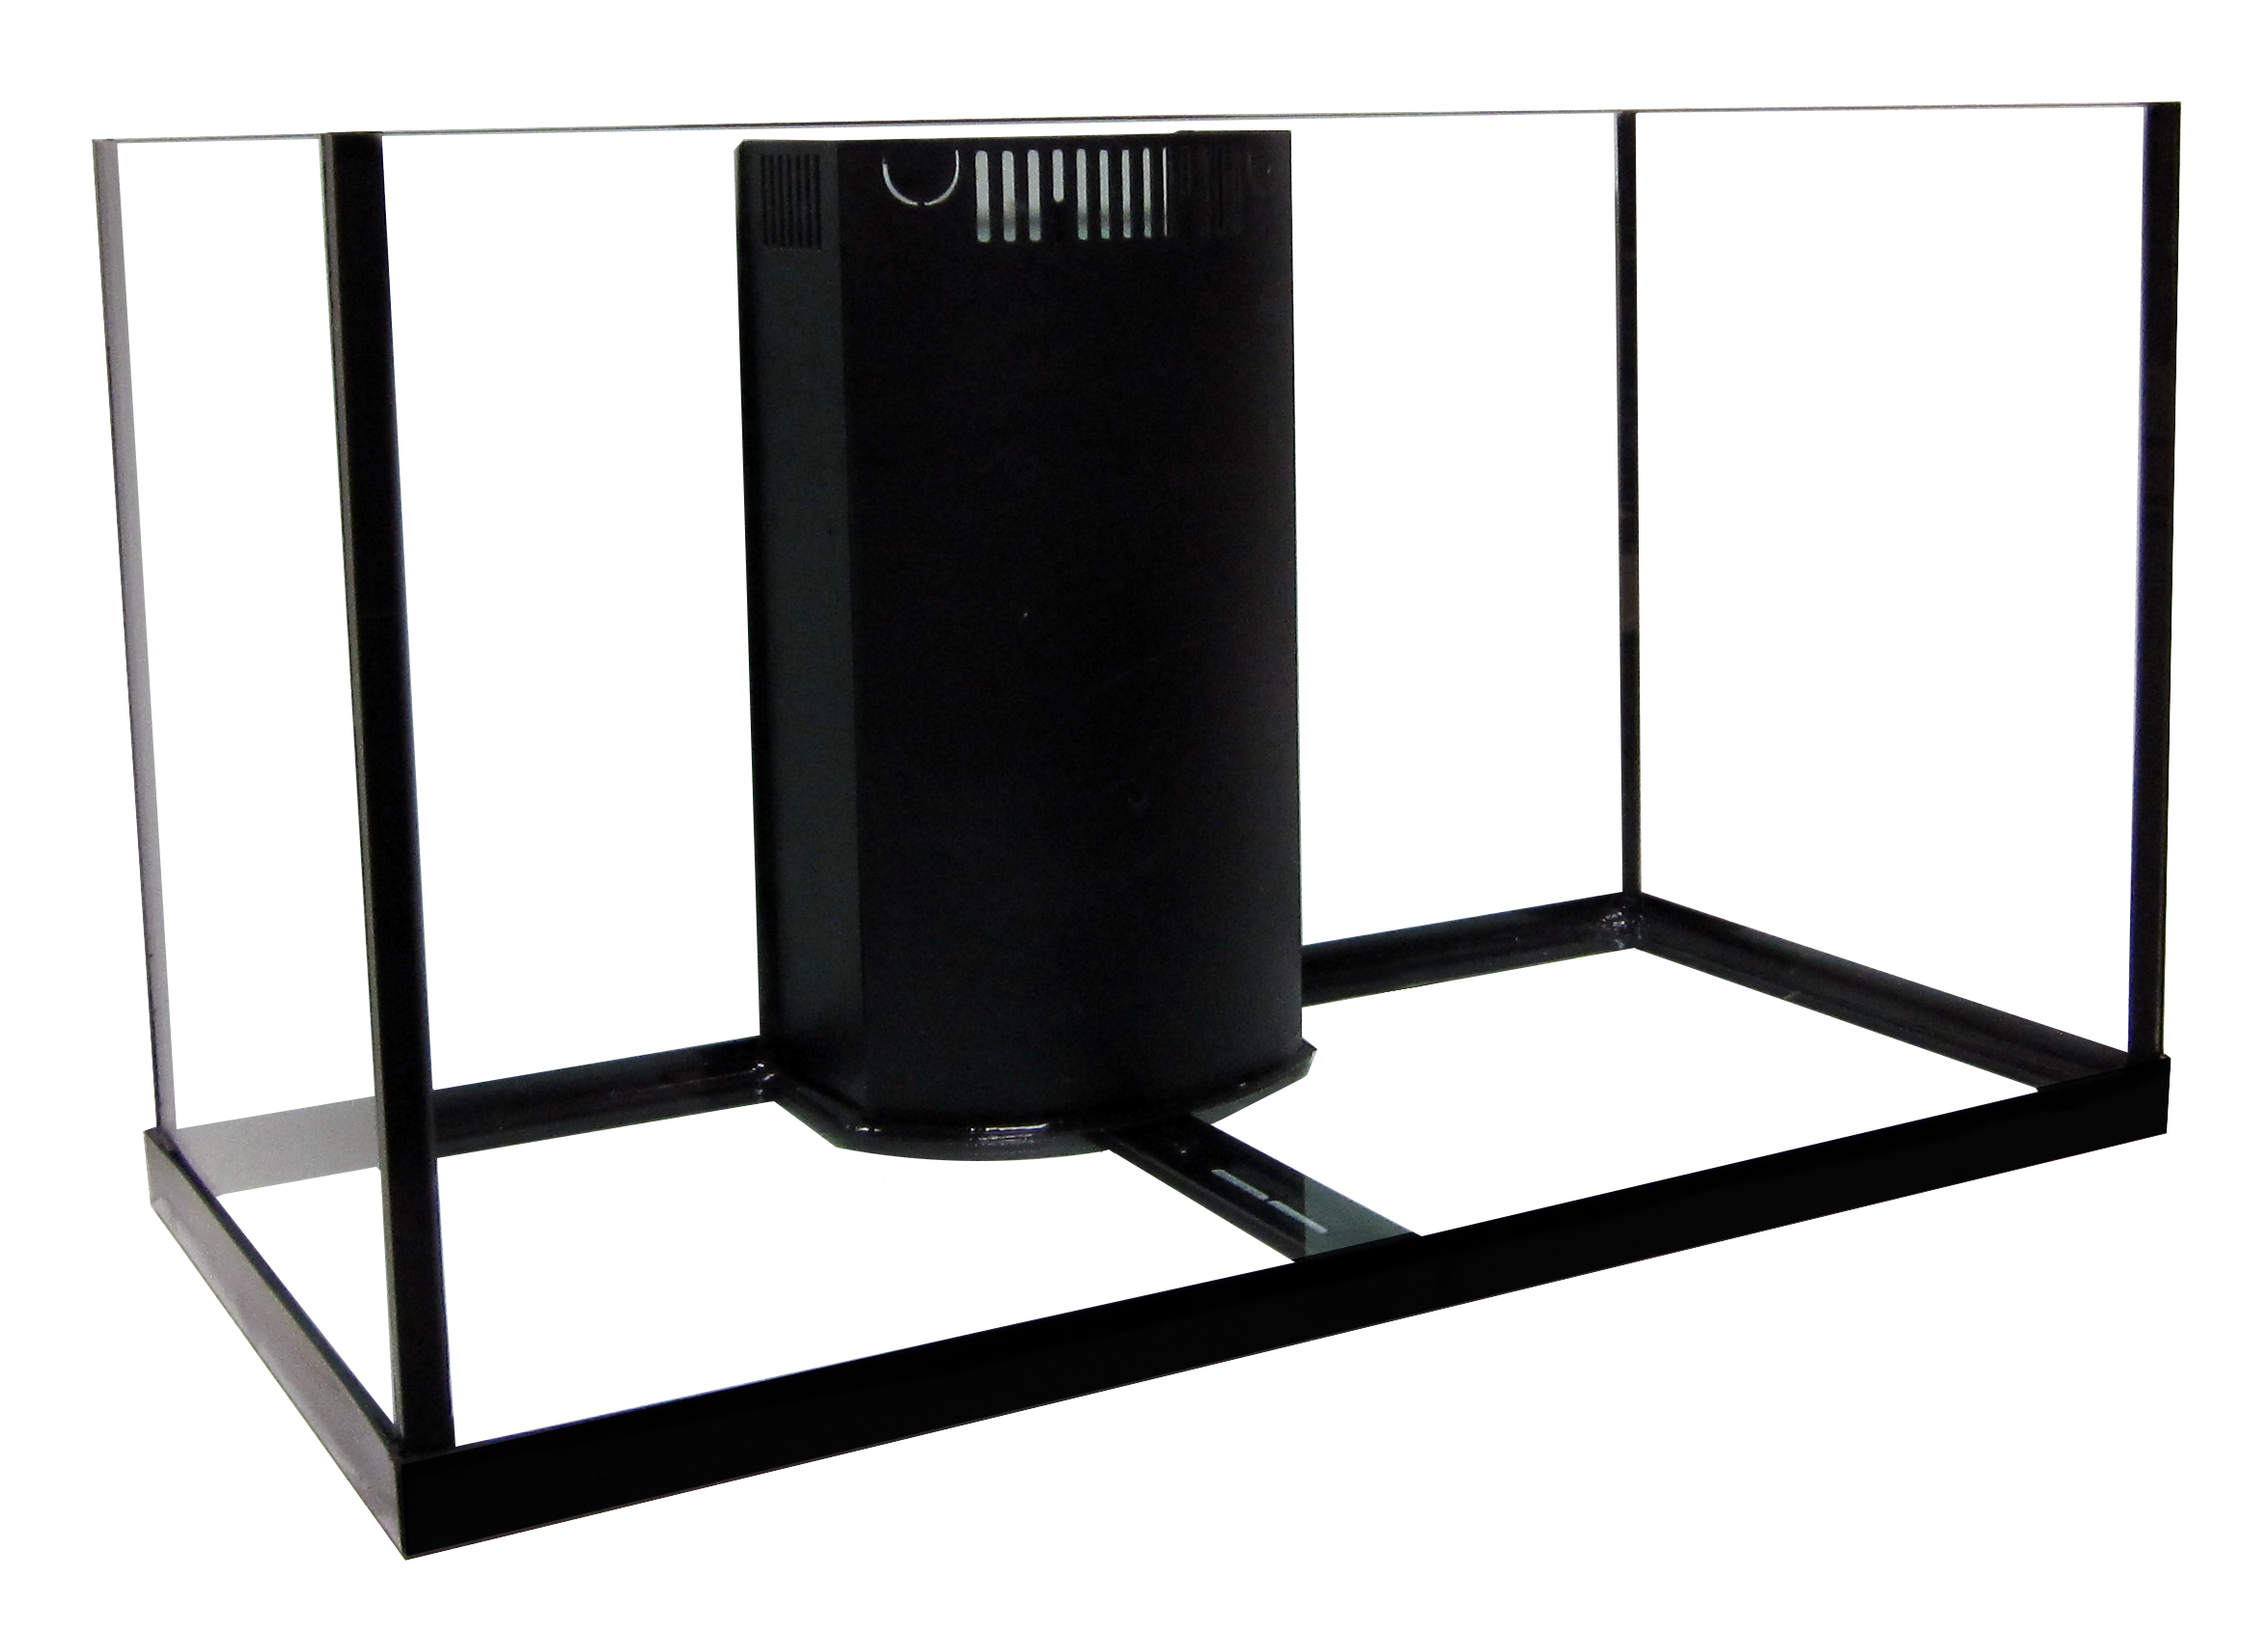 """57 Edge Series Aquarium - 36x18x20 """"  SKU#: AM13057  UPC#: 7-49729-13057-4  Product Dimension: 36.5""""x18.5""""x20.88""""  Capacity: Approximately 57 gallons  Weight: 119 lbs."""